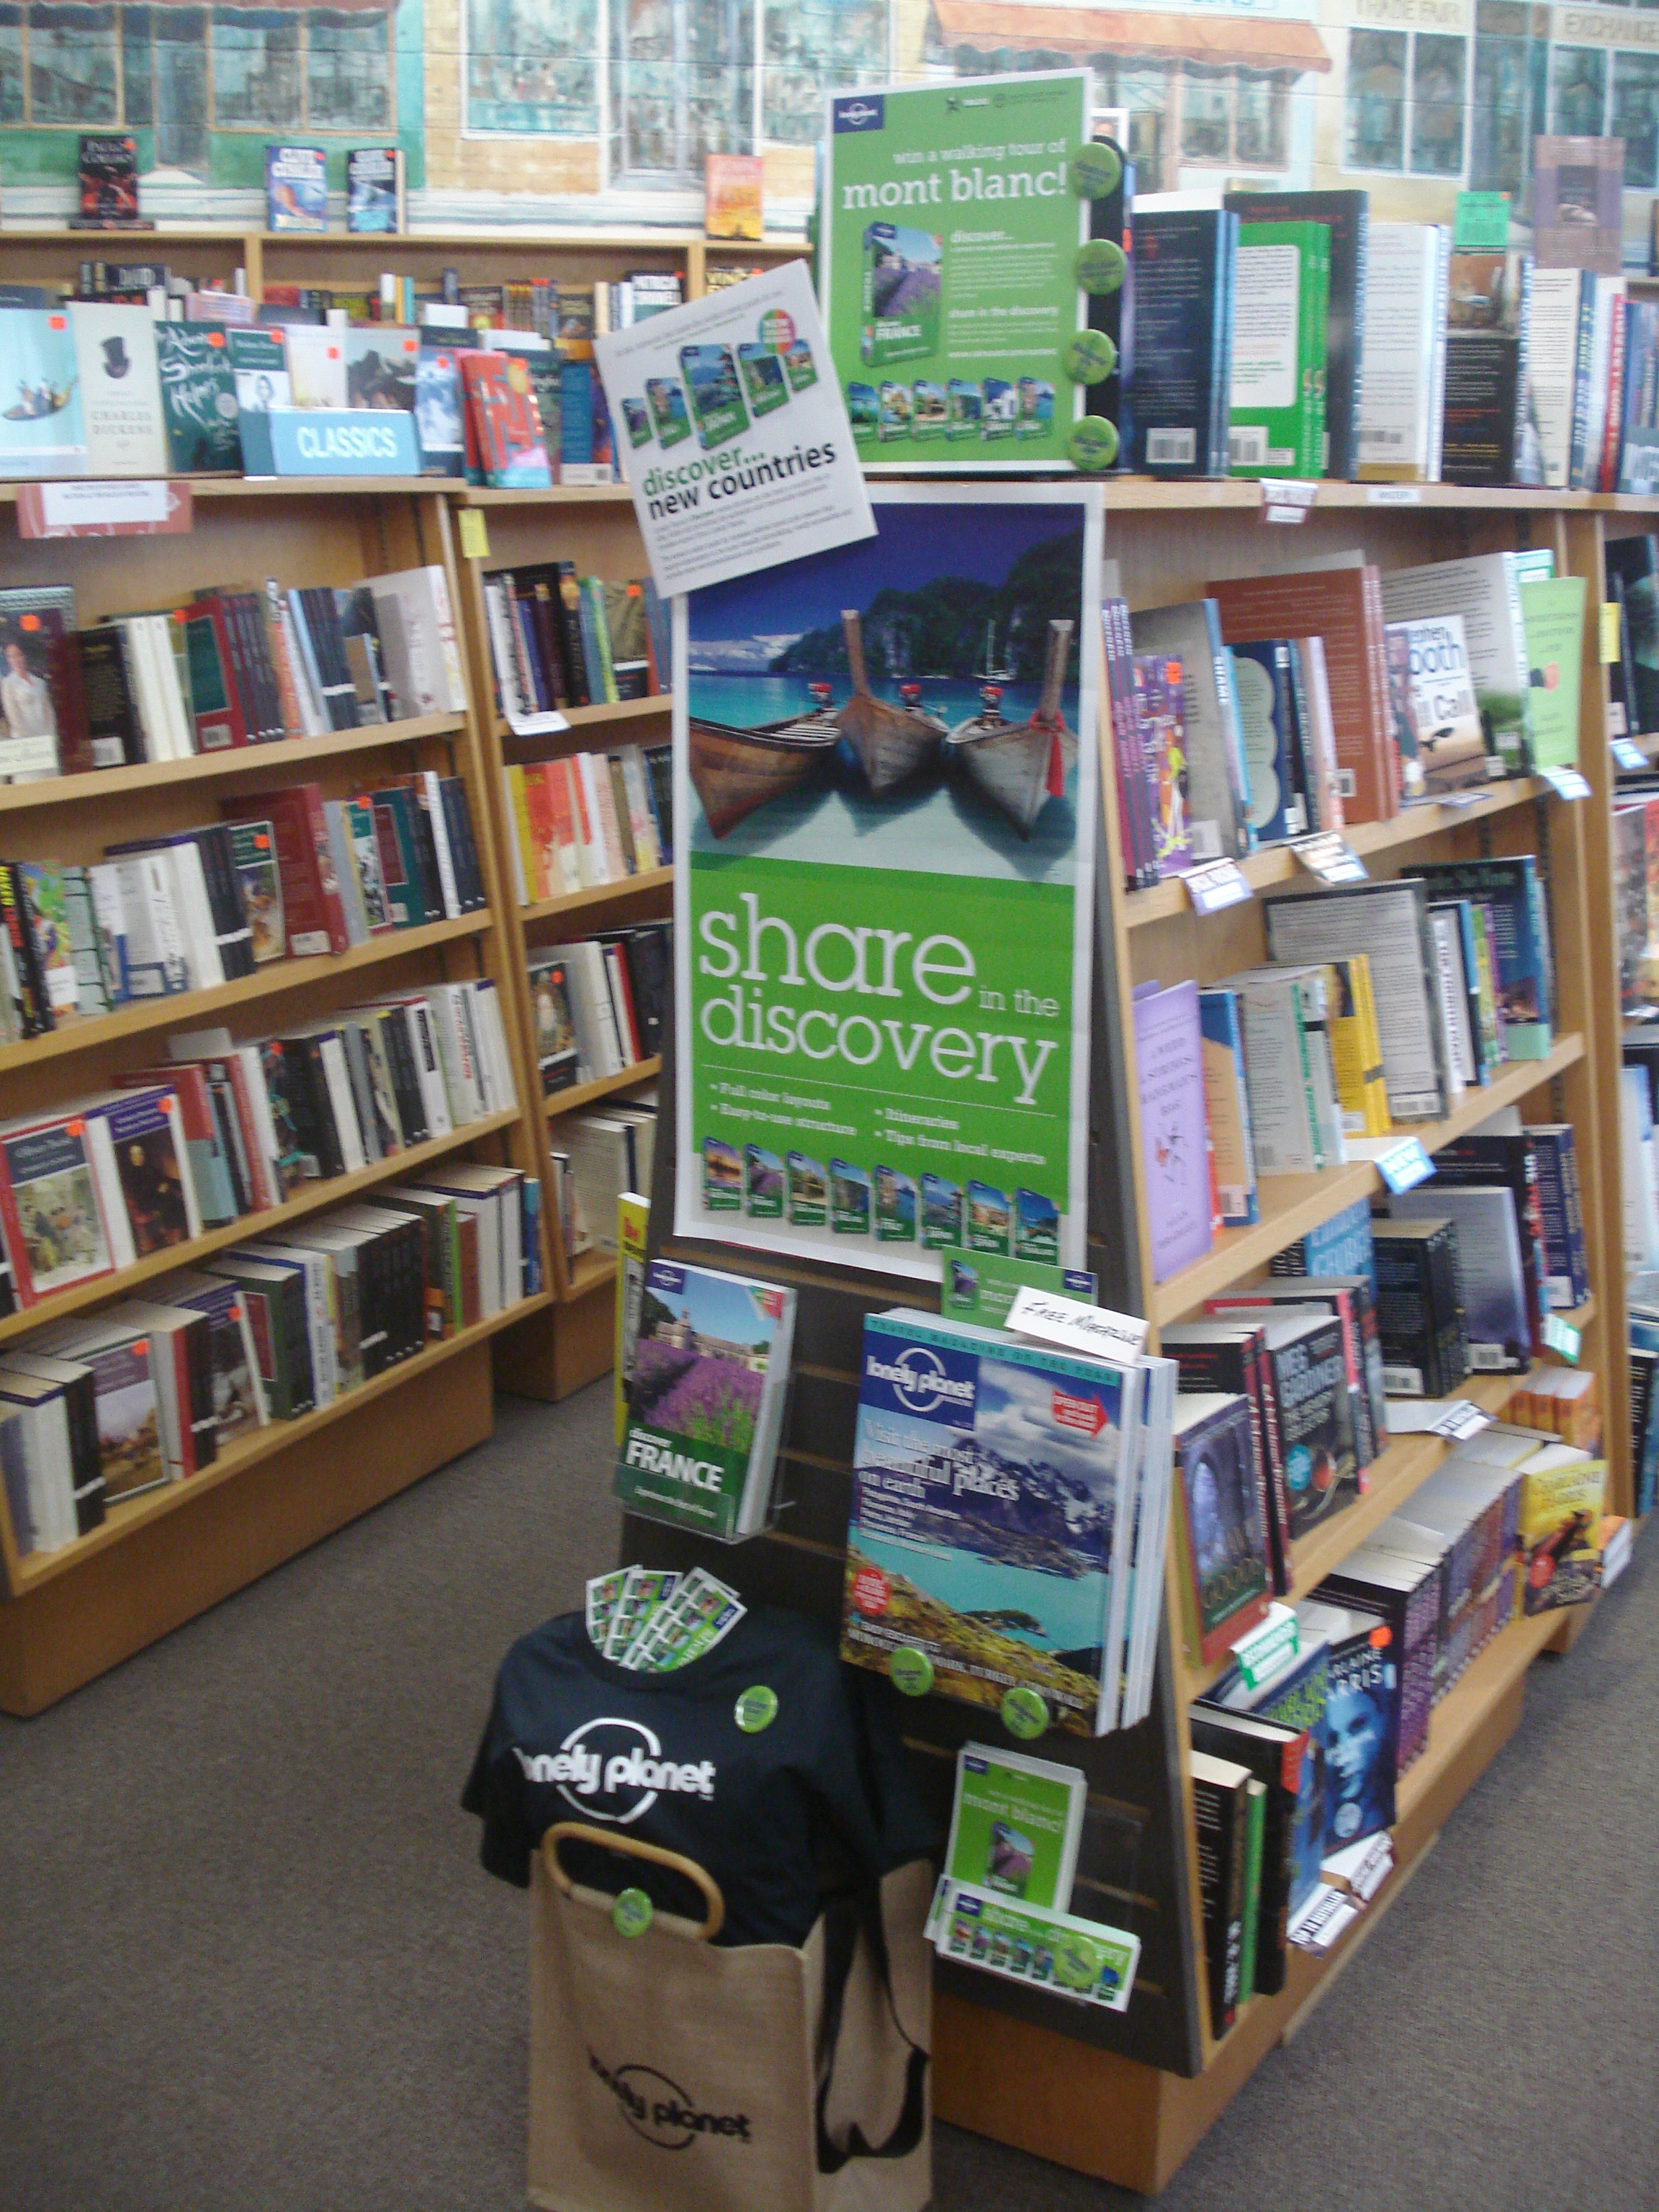 Black Bond Books' Lonely Planet Discover Display